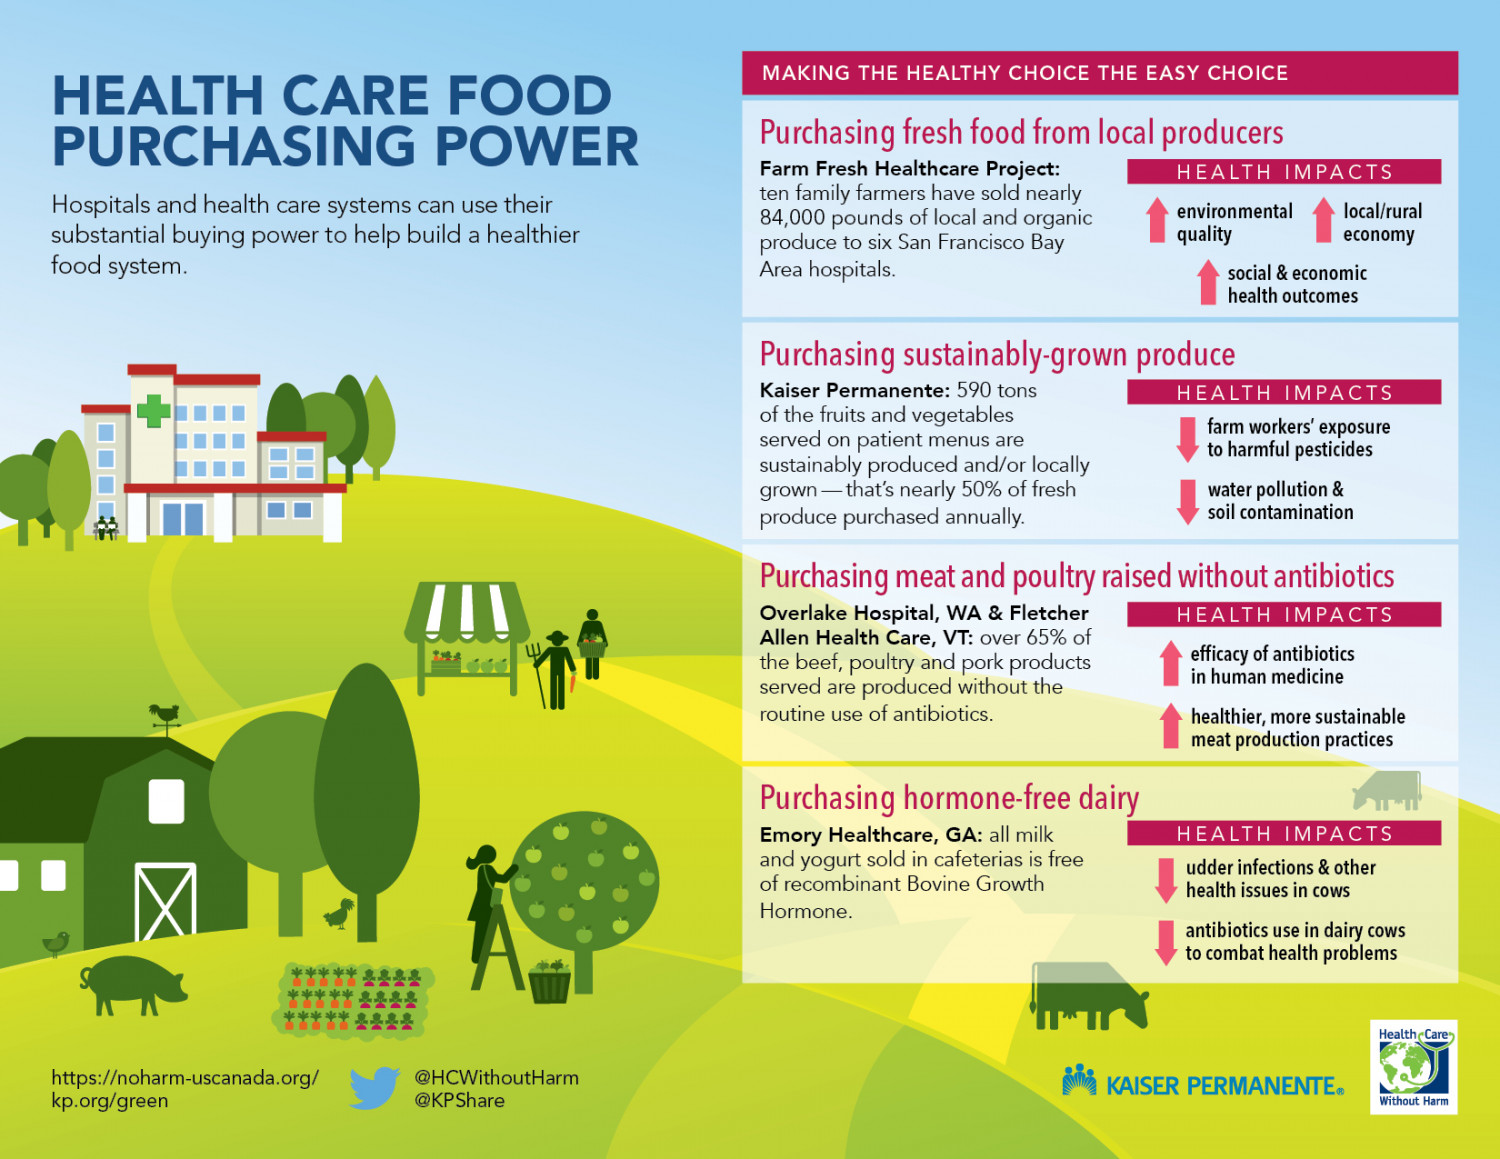 Health Care Food Purchasing Power